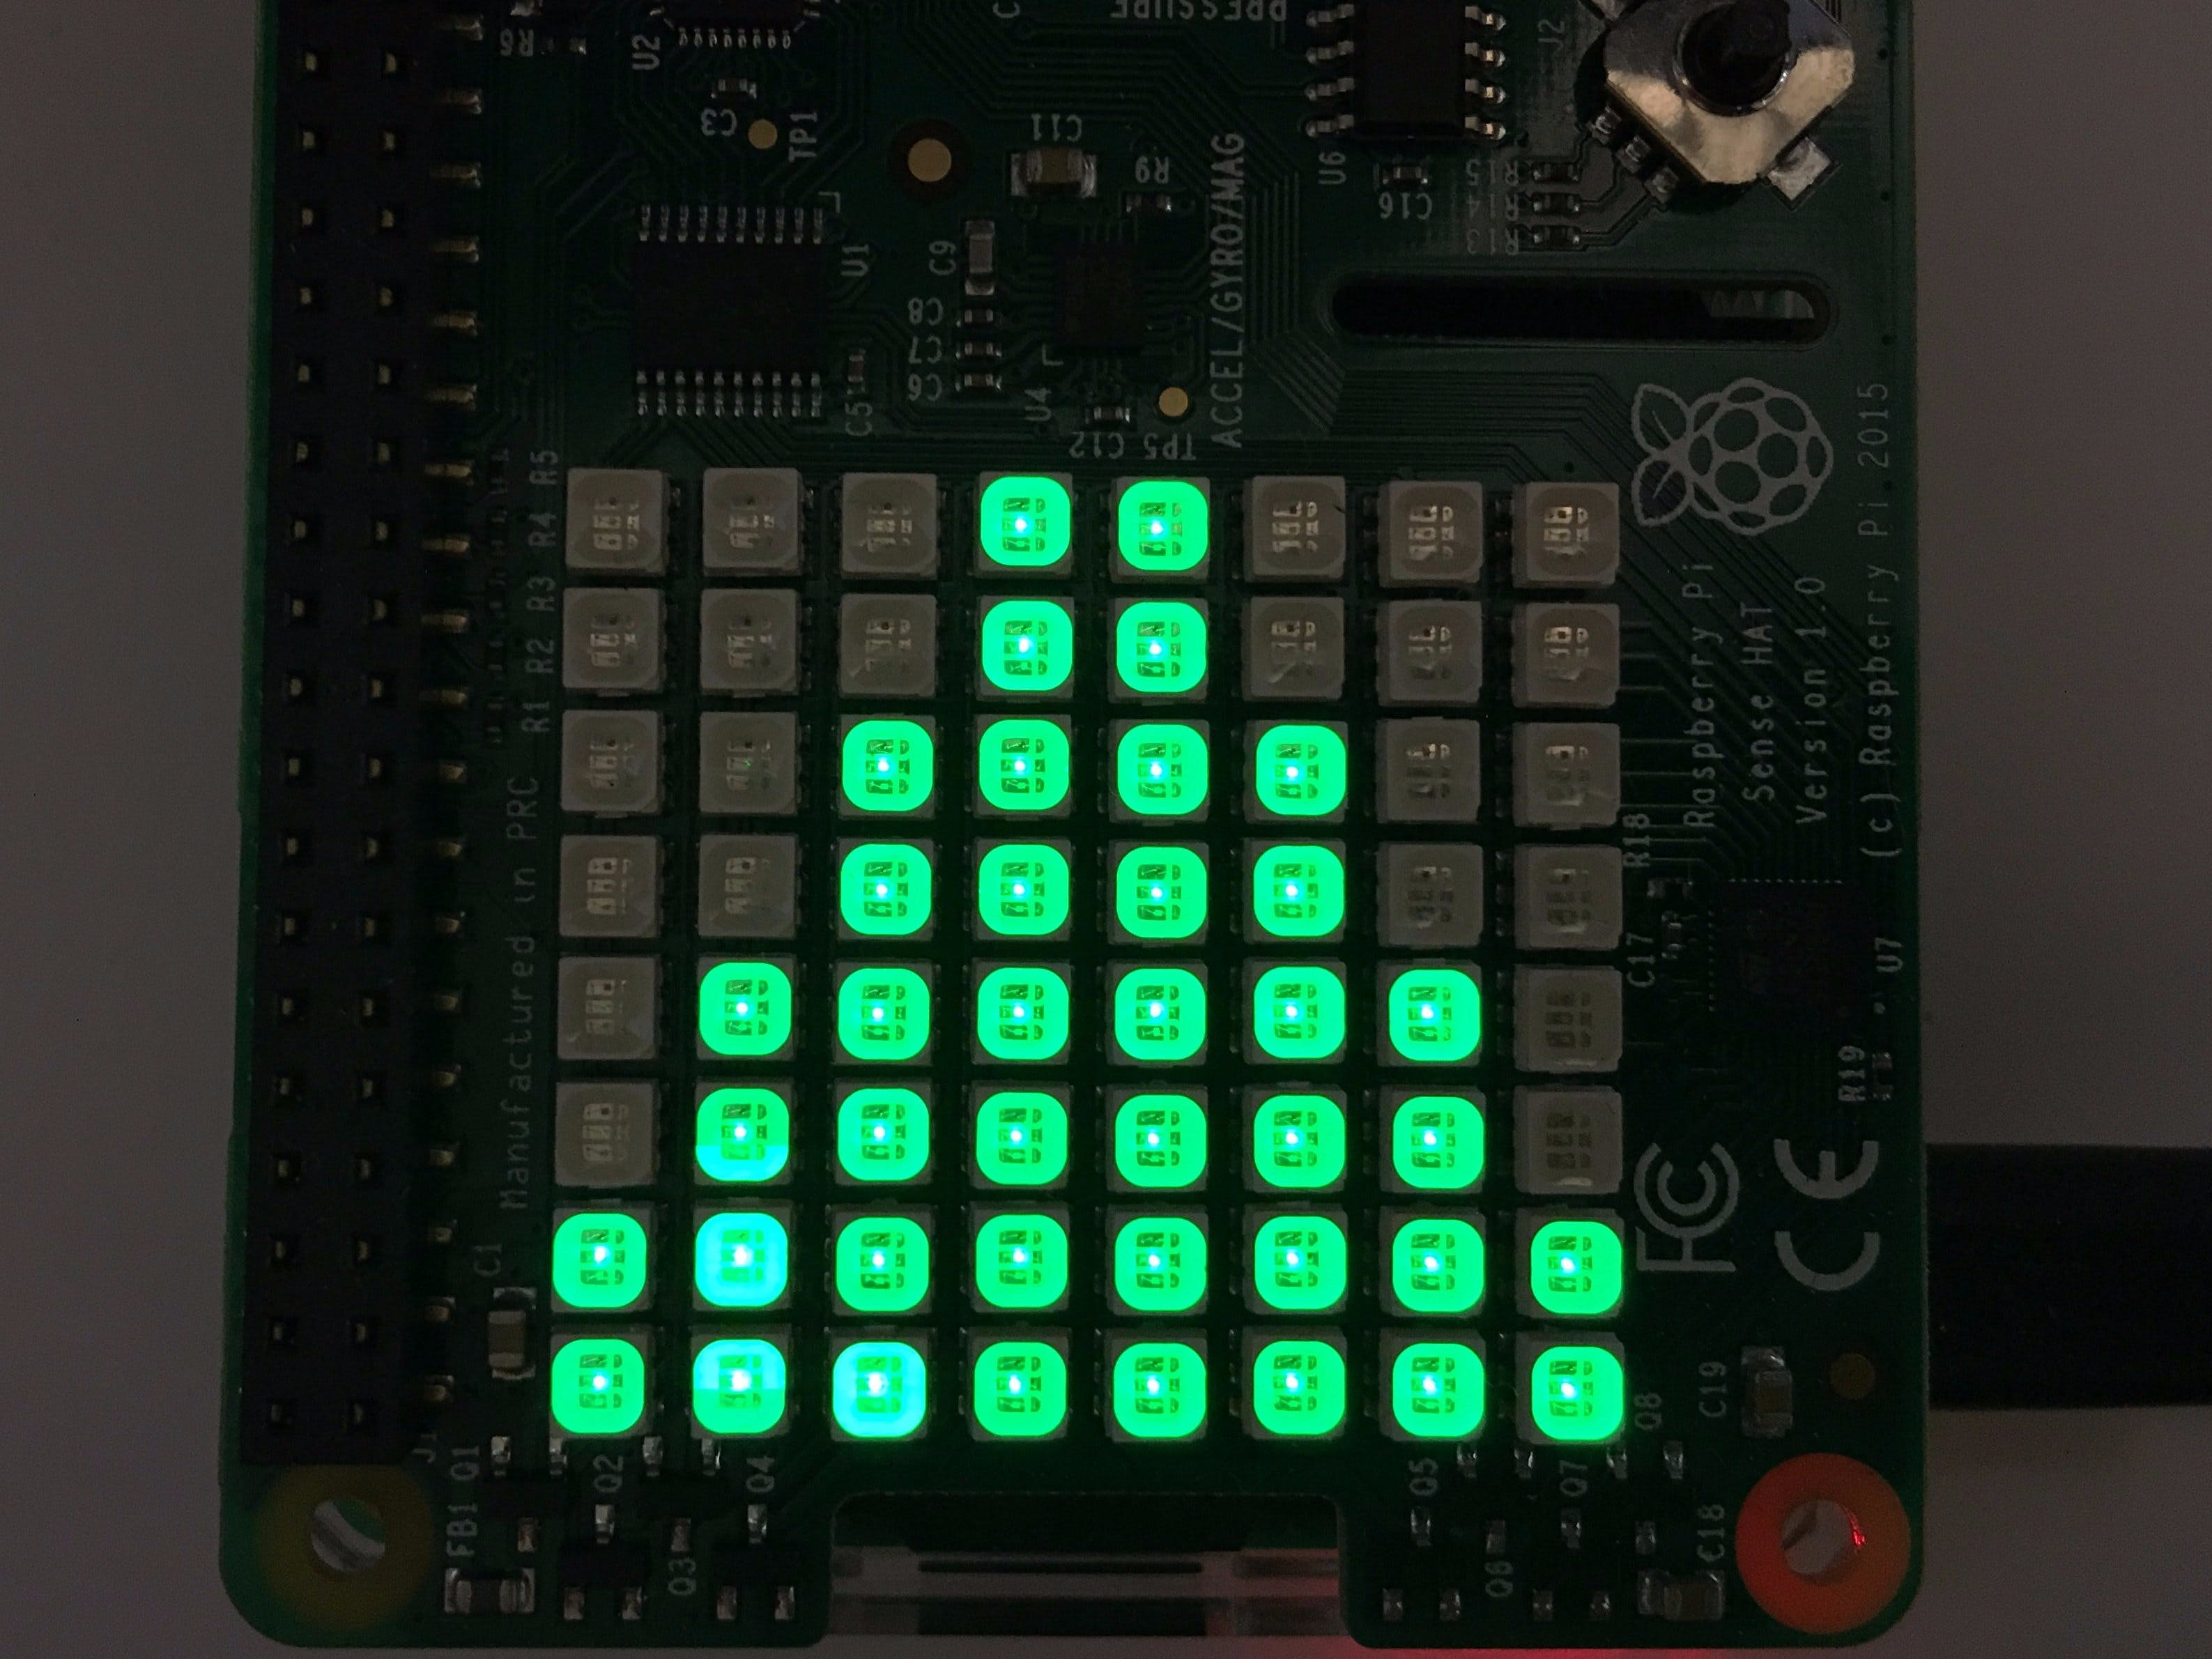 Raspberry Pi and Sense Hat Stock Symbol Price Ticker